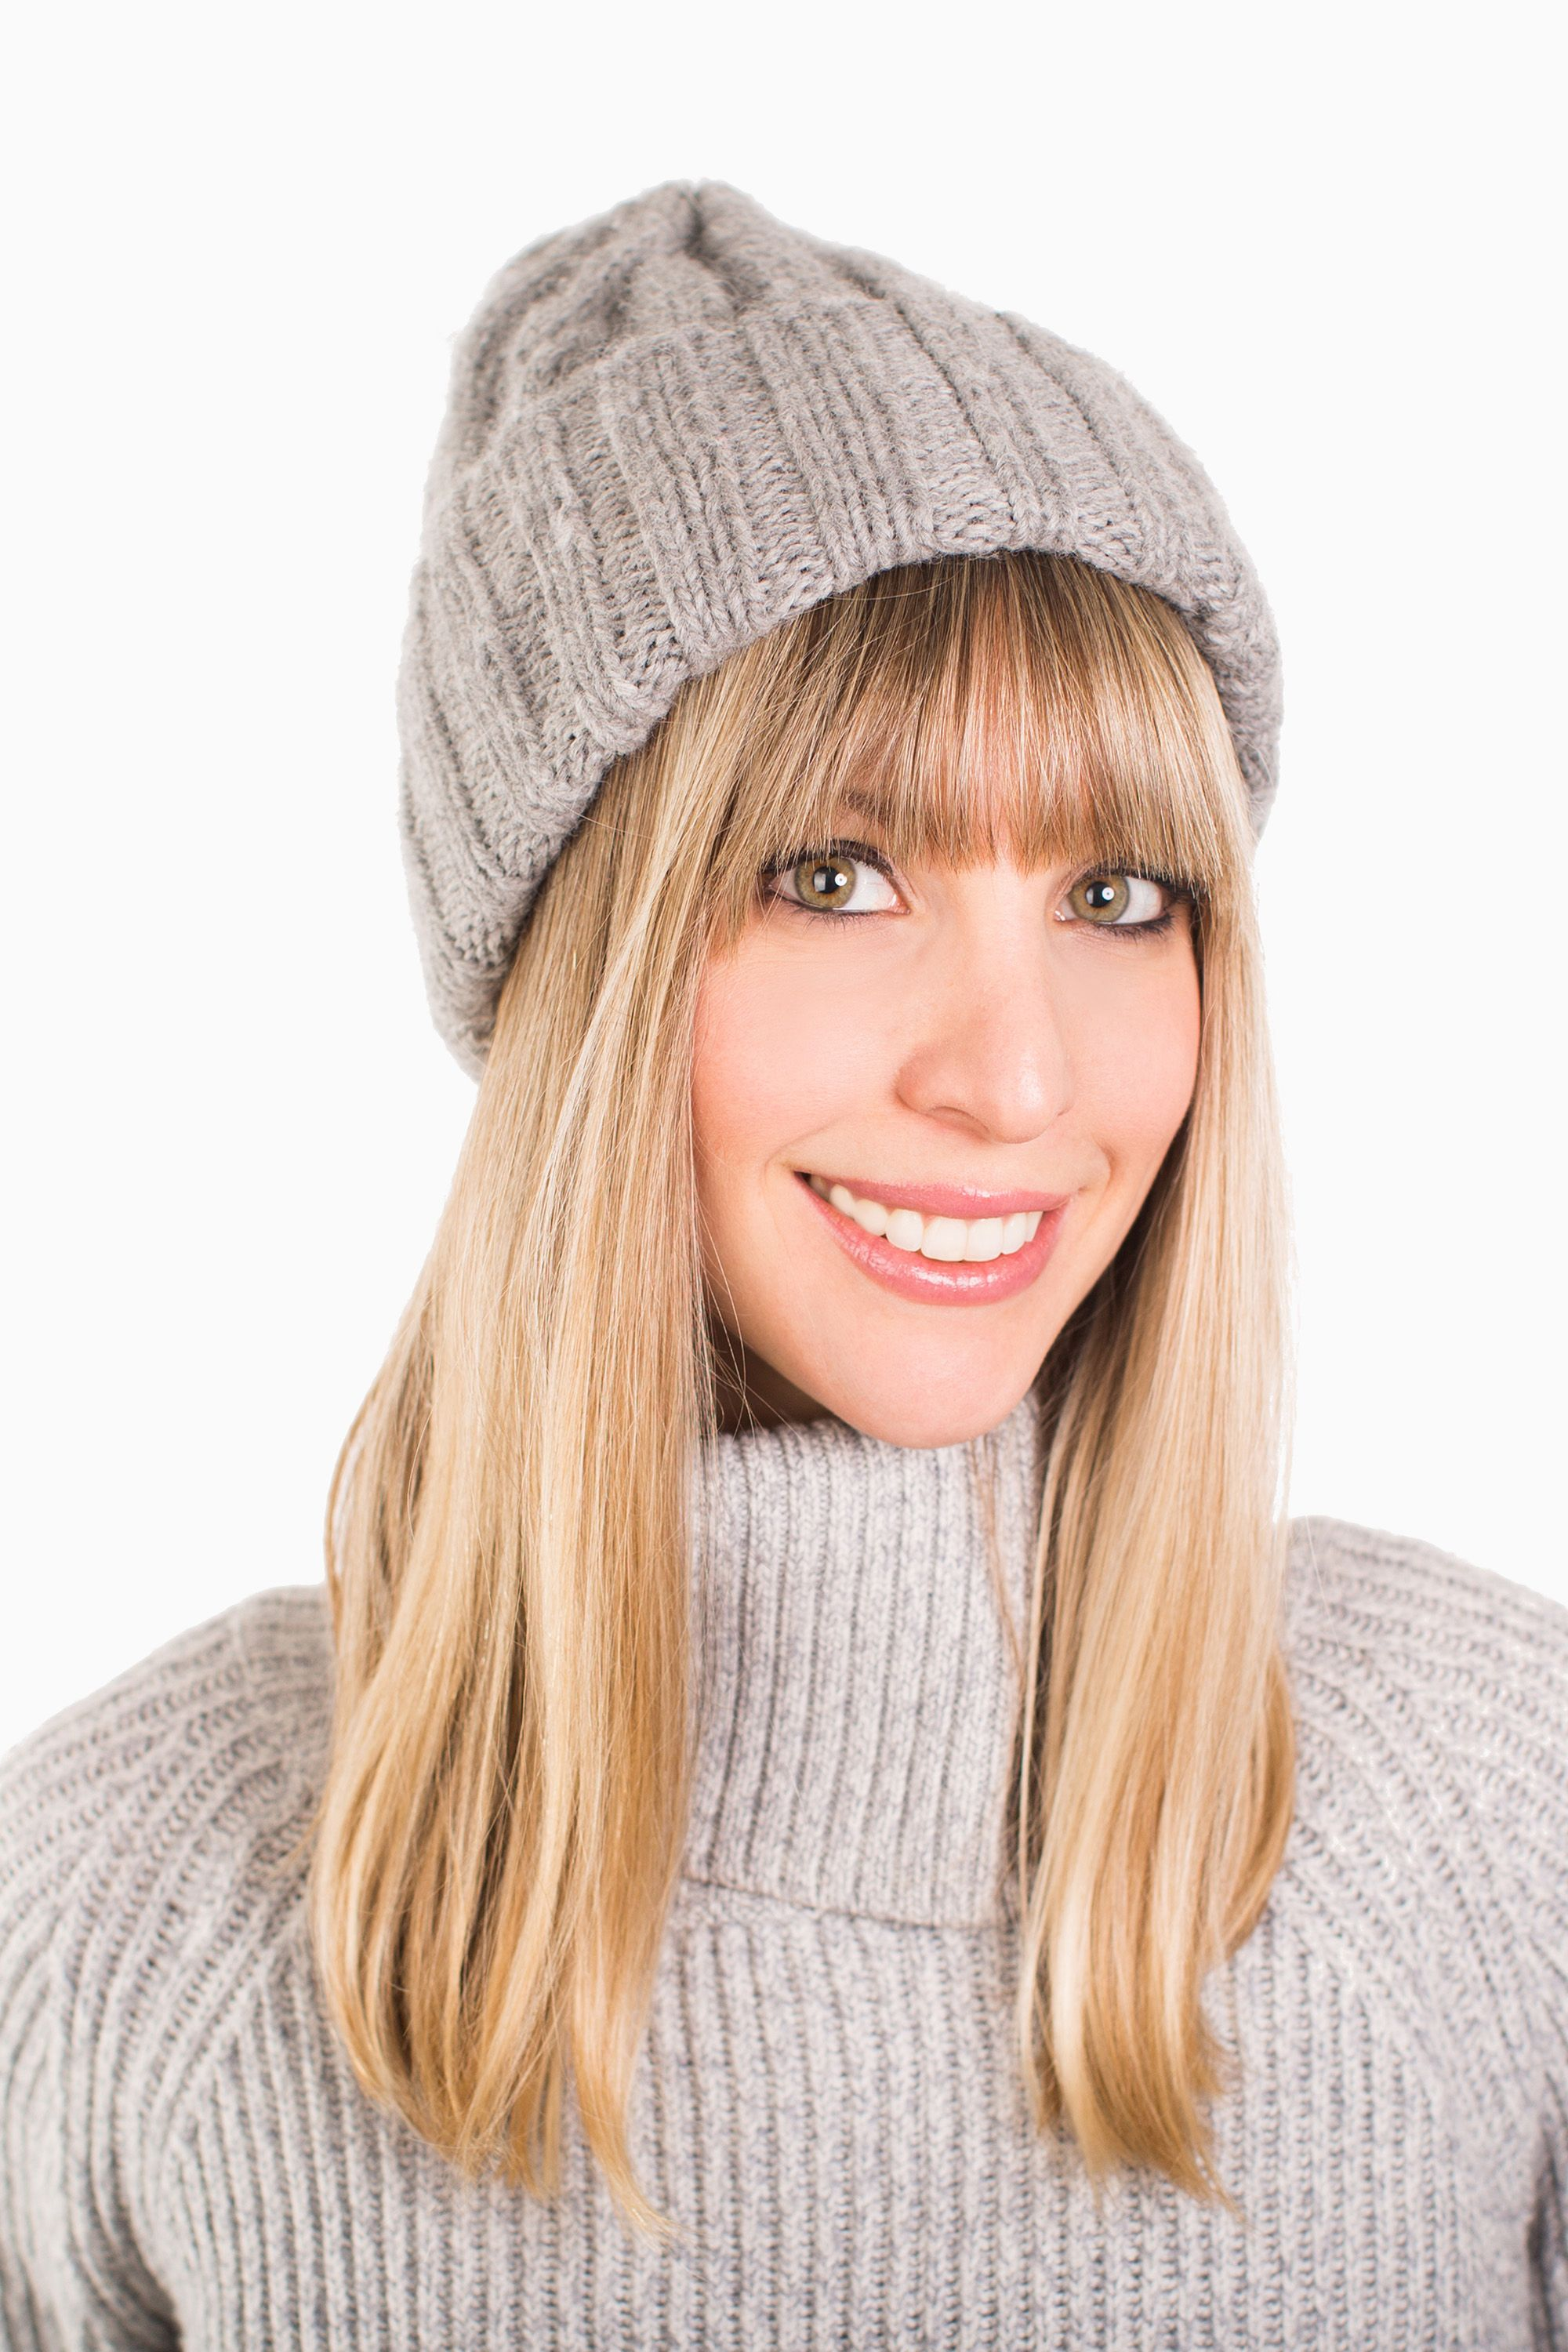 574a736bd Beanie Babes: How to Wear the Winter Staple Well | knitting: hats ...